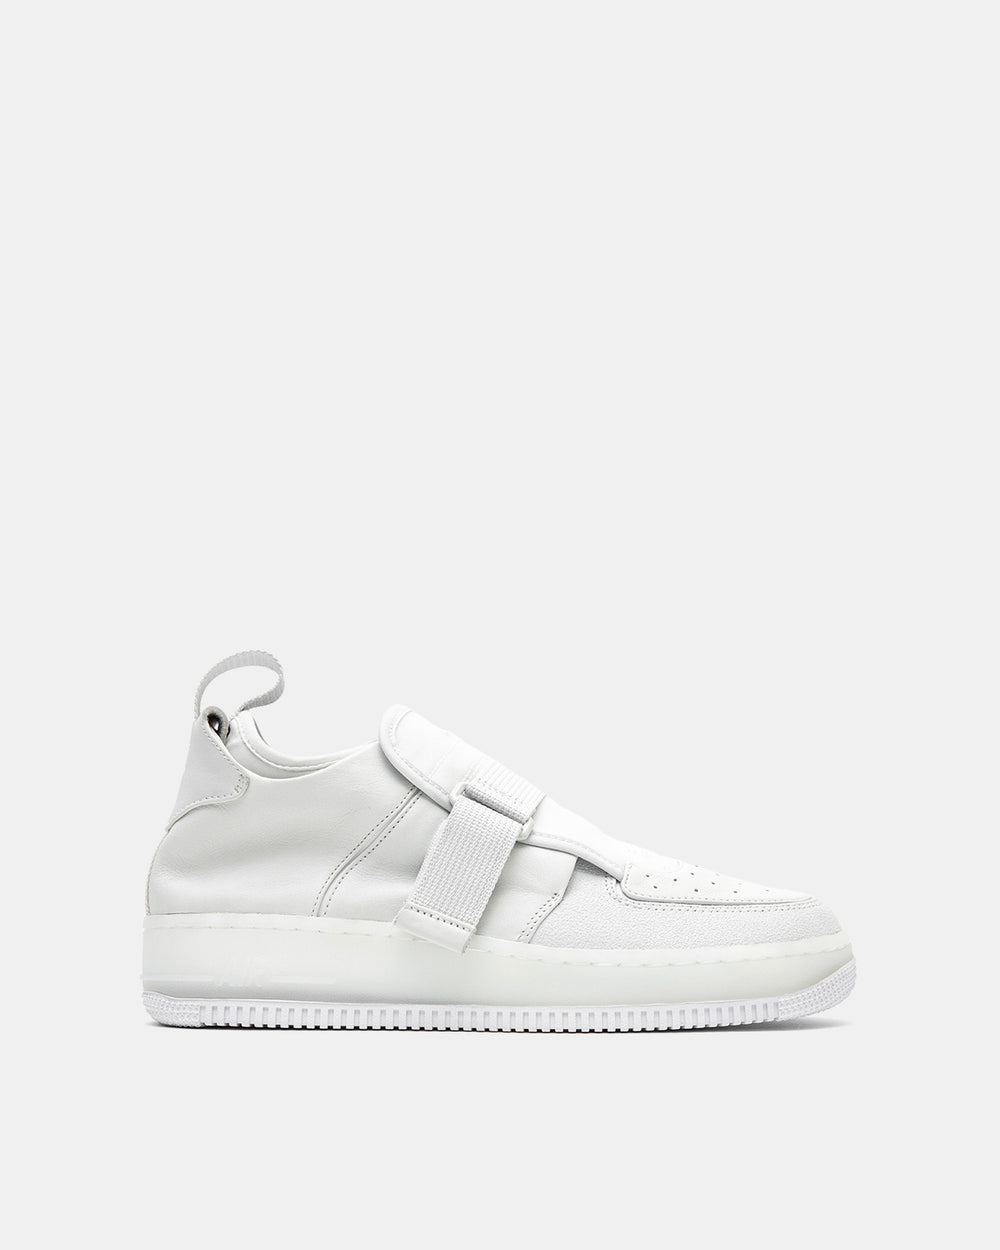 Nike - Women's Air Force 1 Explorer XX 'The 1 Reimagined' (Off White)